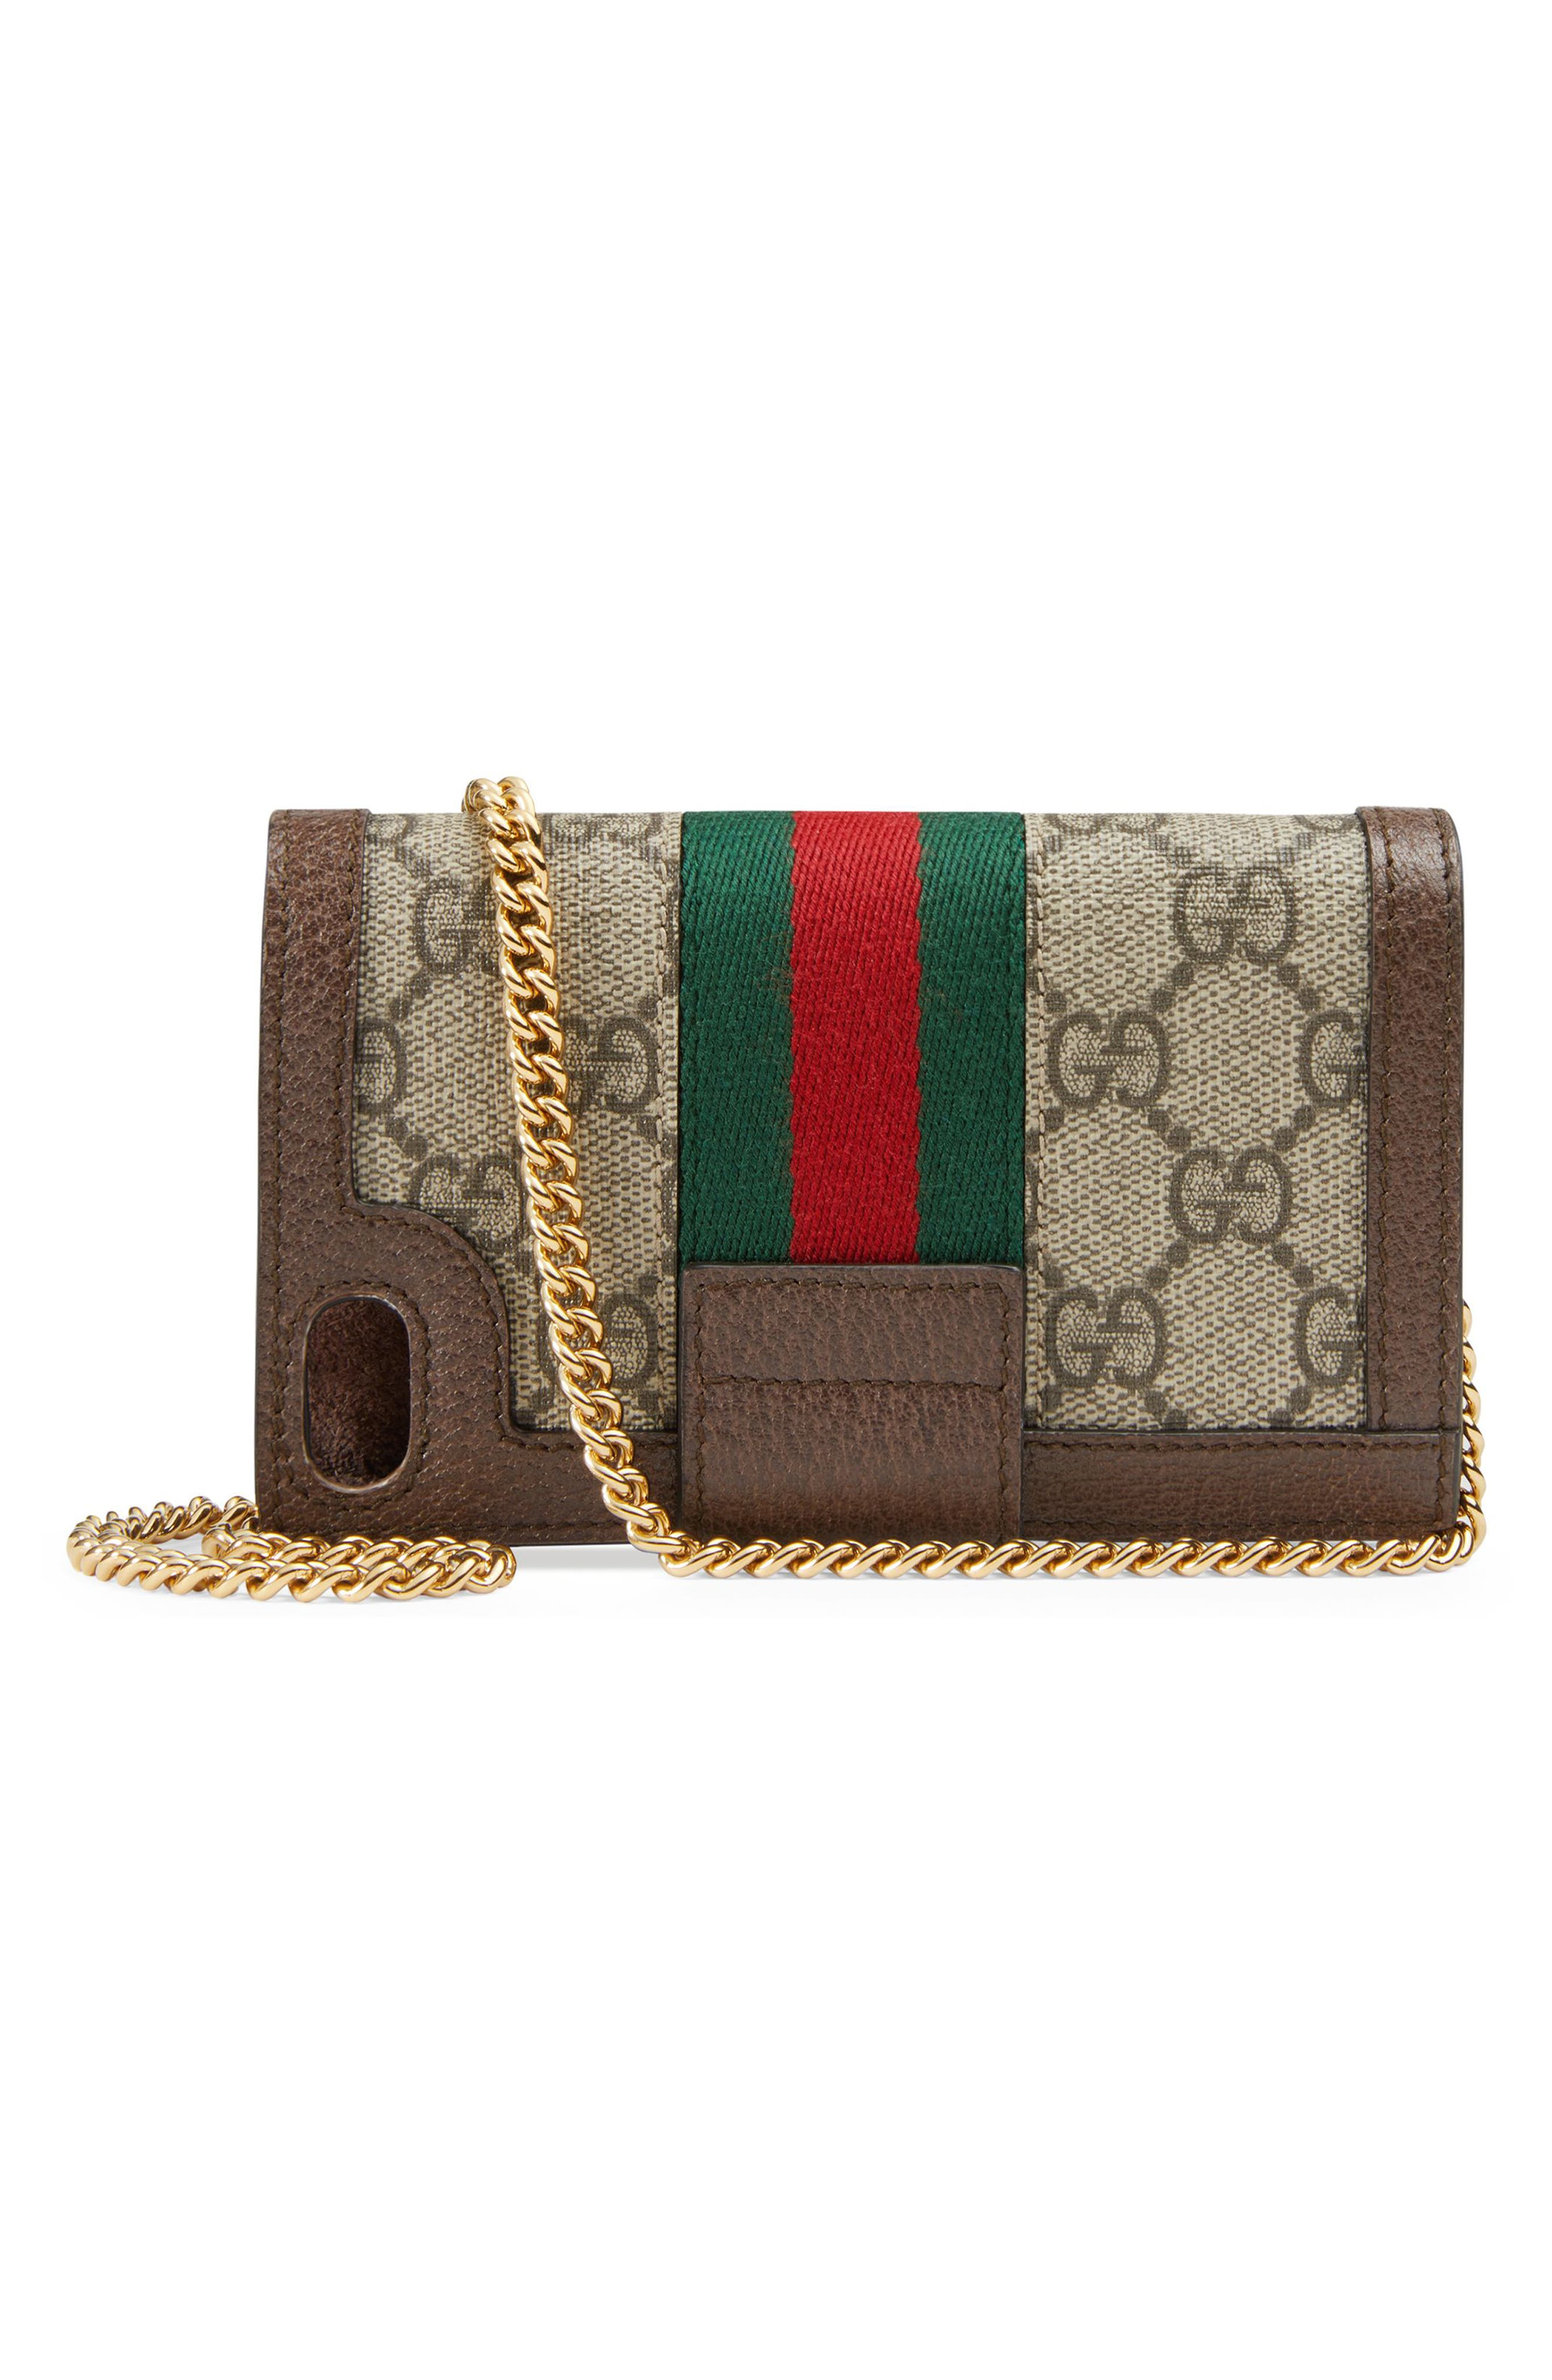 GUCCI, Ophidia GG Supreme iPhone 7/8 Case, Alternate thumbnail 3, color, BEIGE EBONY/ ACERO/ VERT RED